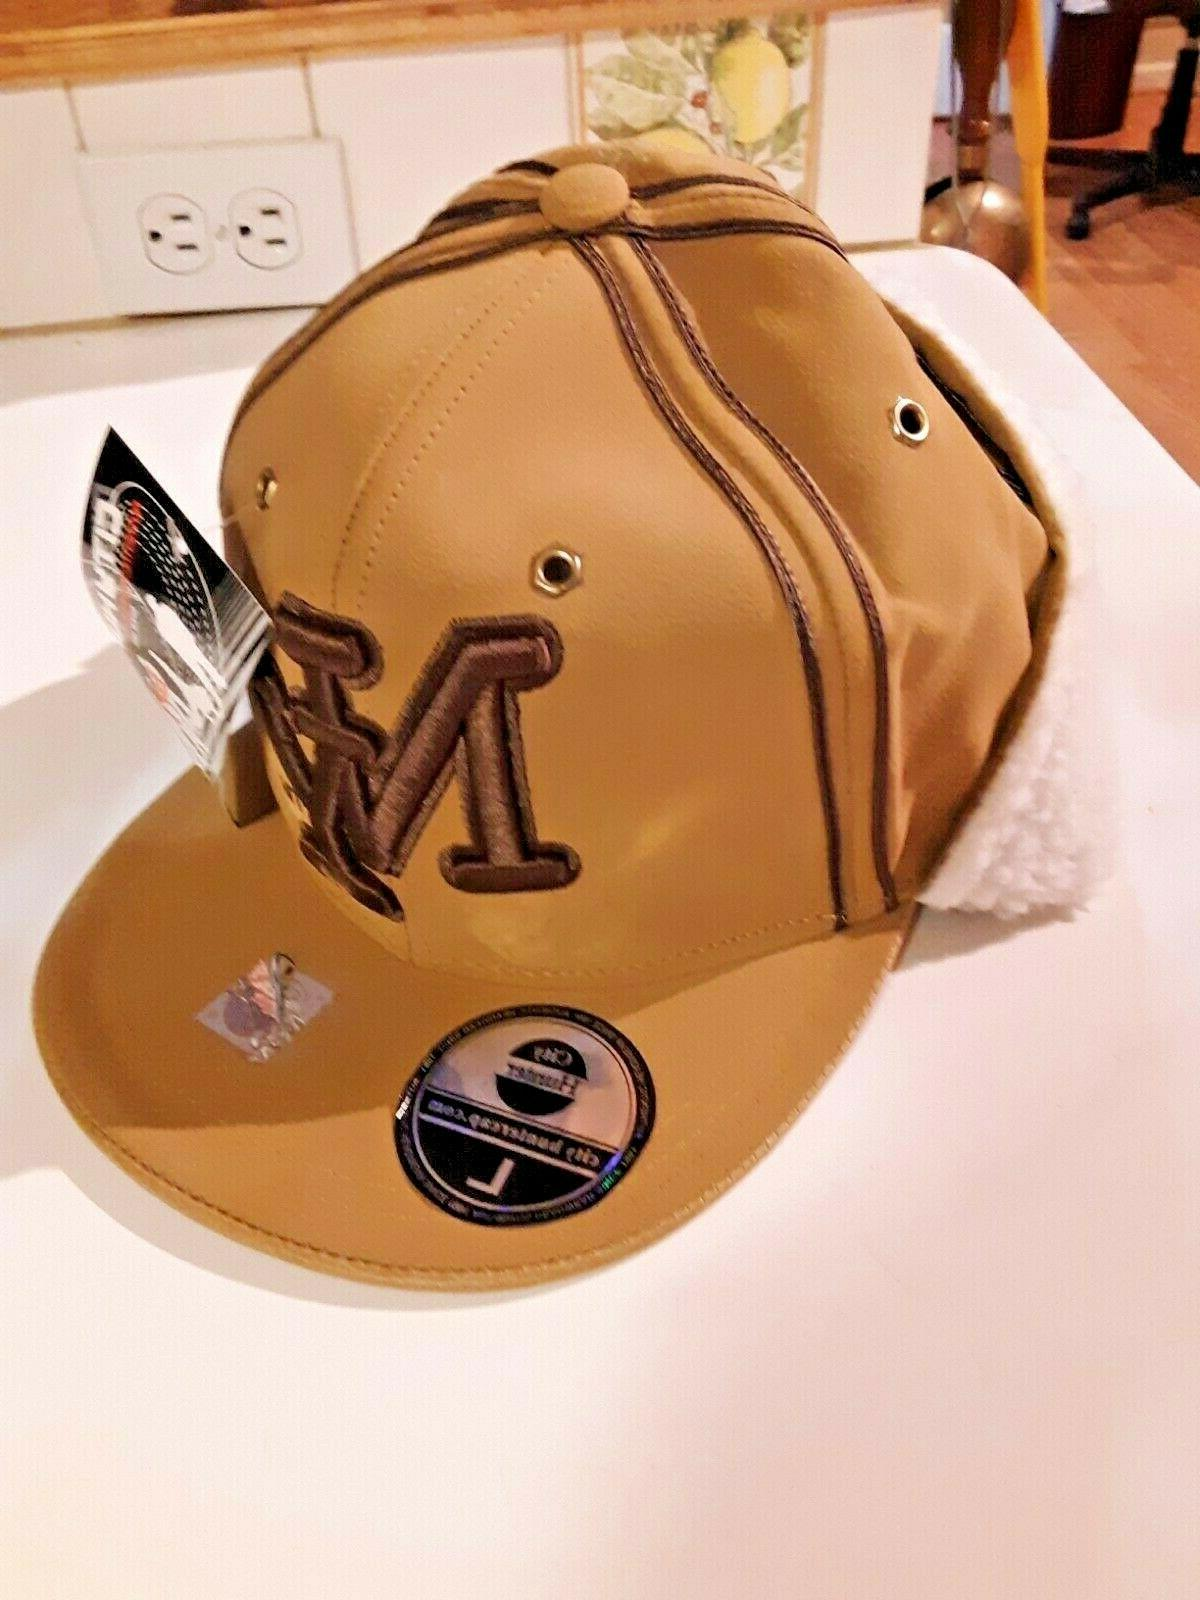 new ny baseball hat fitted lg brown